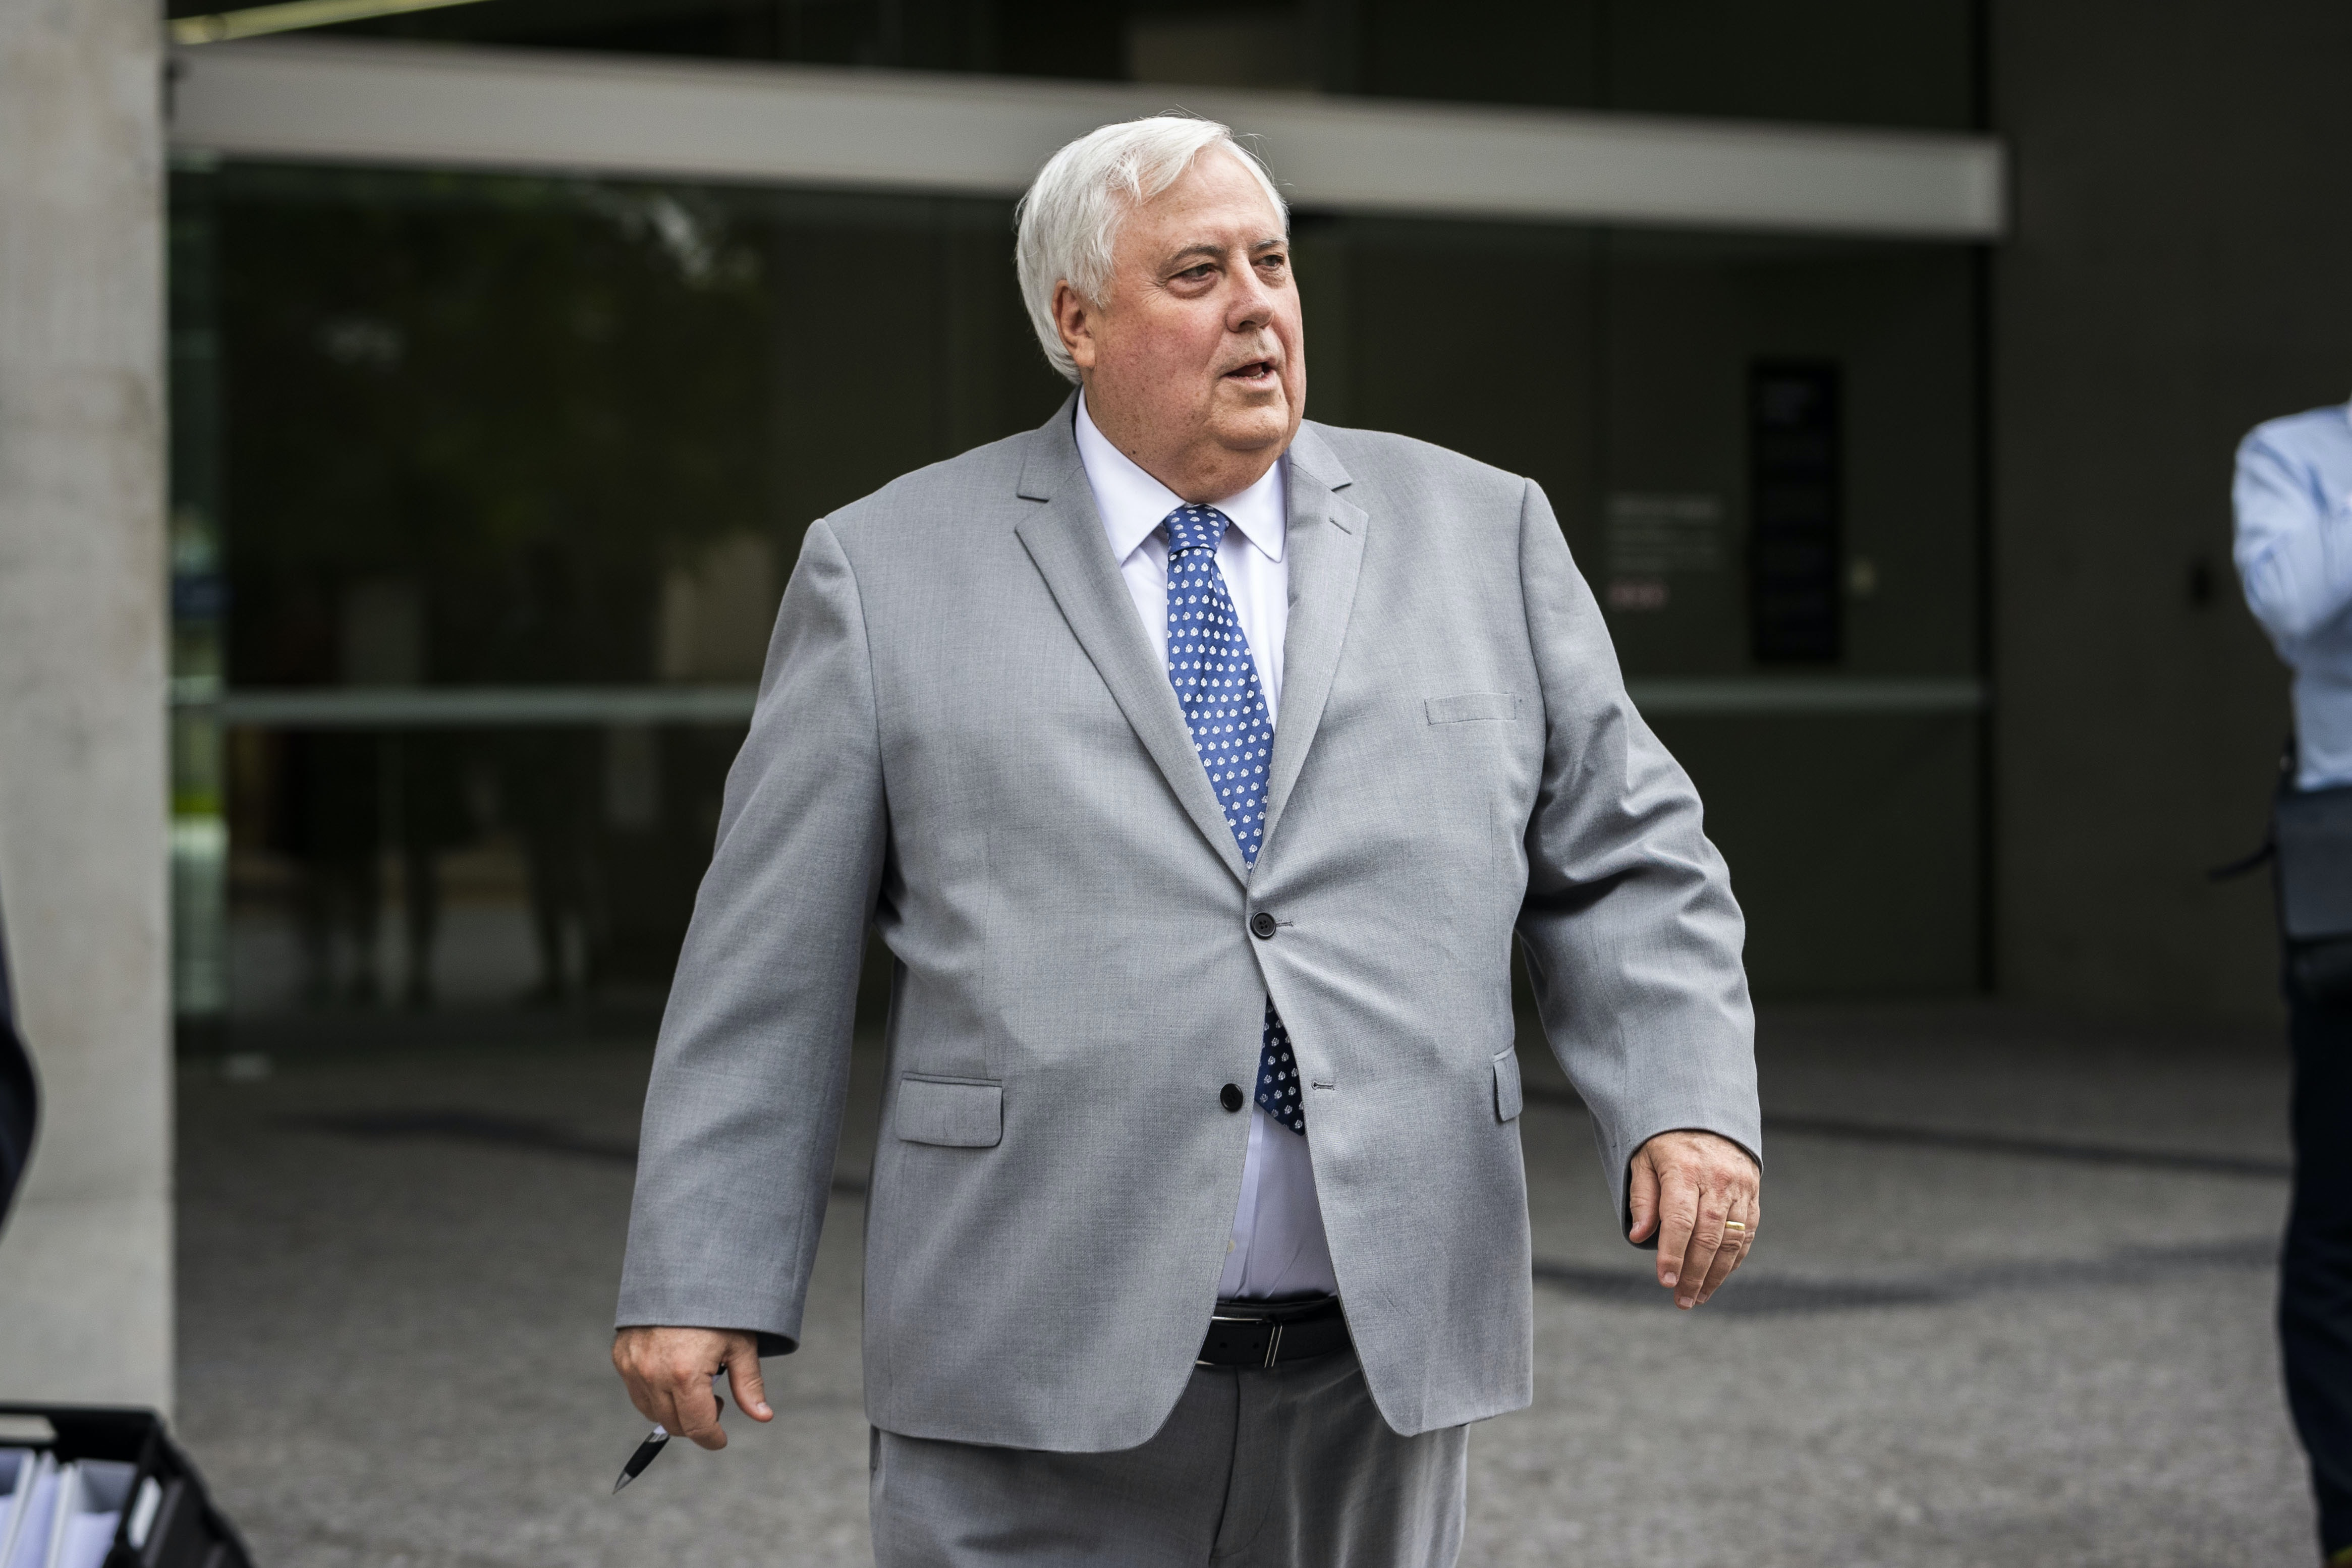 Poll wrap: Labor's Newspoll lead falls to 51-49 on dubious assumptions as Palmer and Coalition do a deal